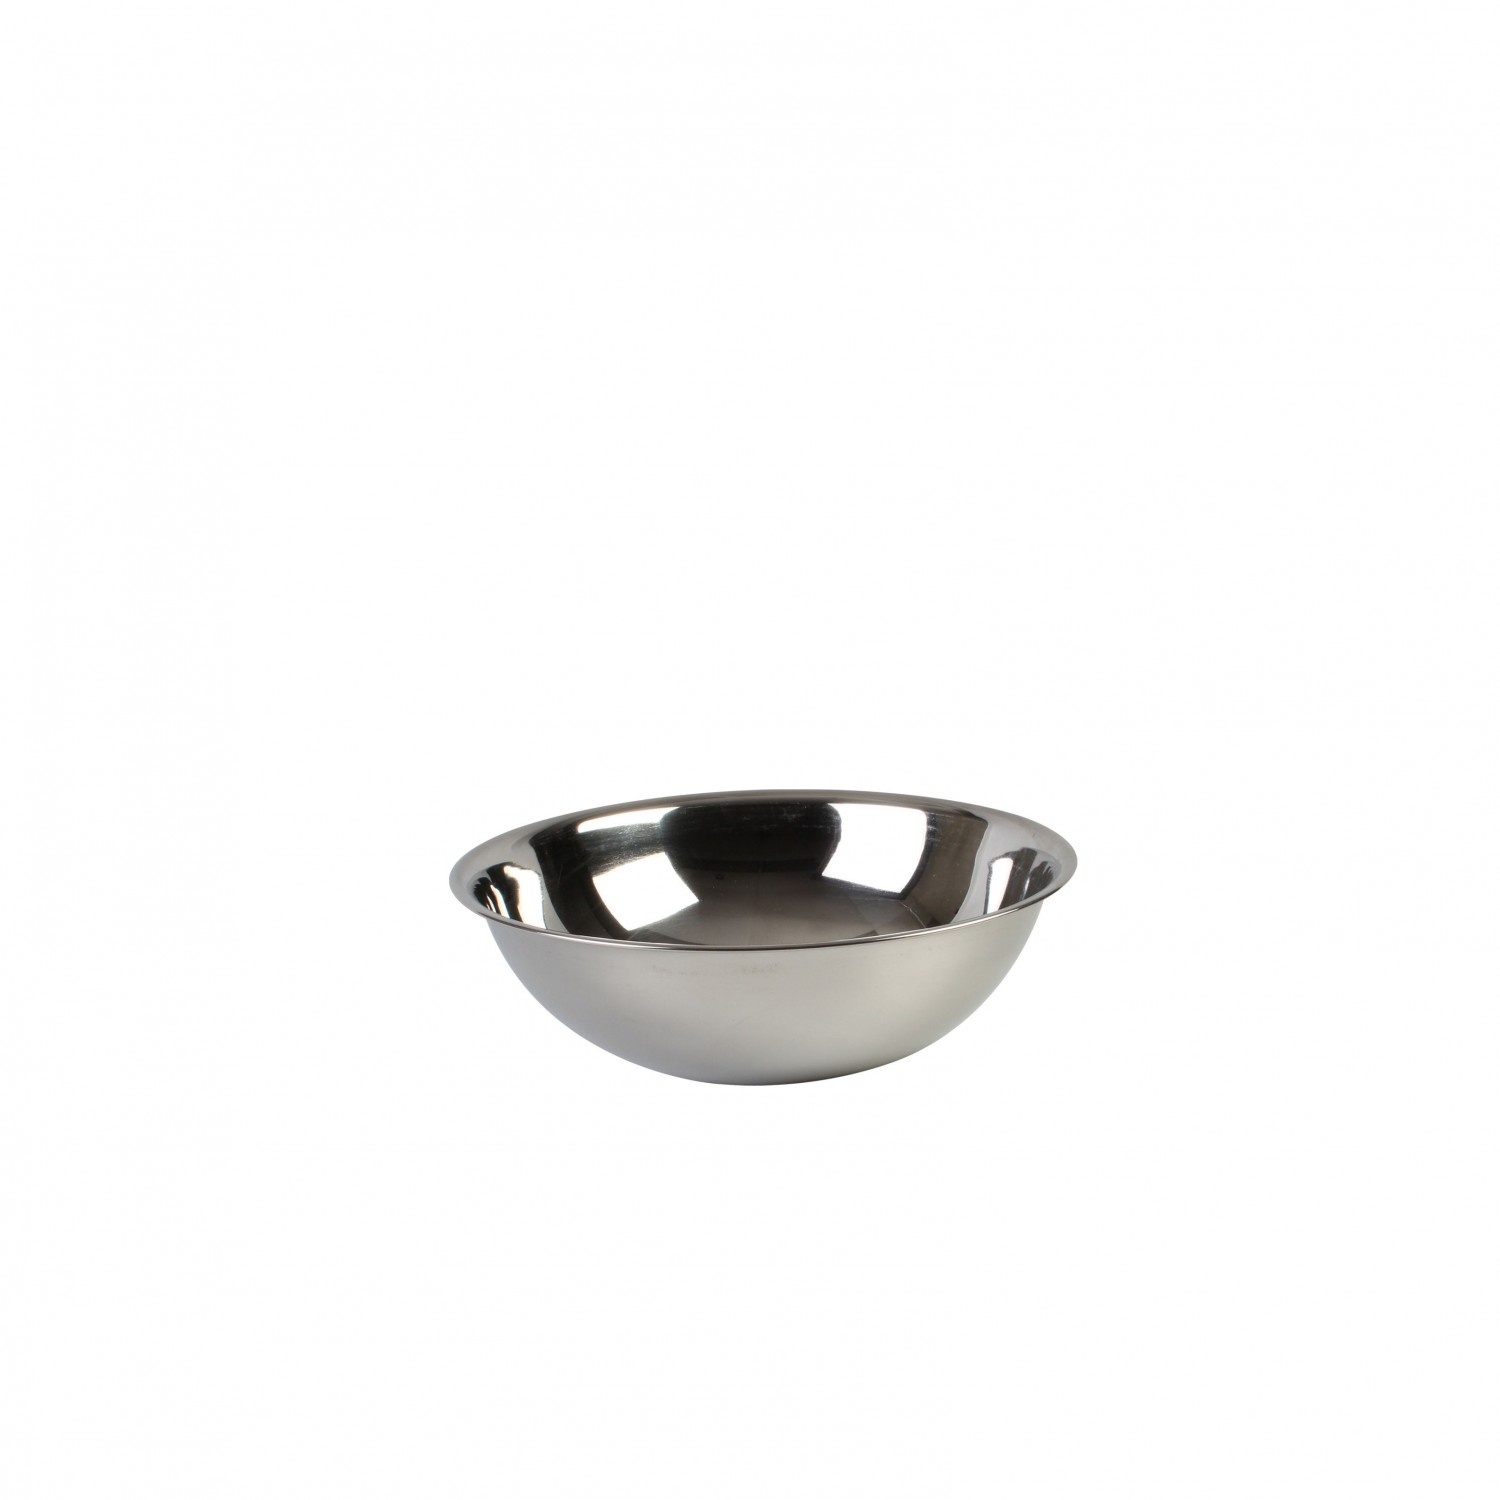 Thunder Group SLMB203 Heavy Duty Stainless Steel Mixing Bowl 3 Qt. - 2 doz